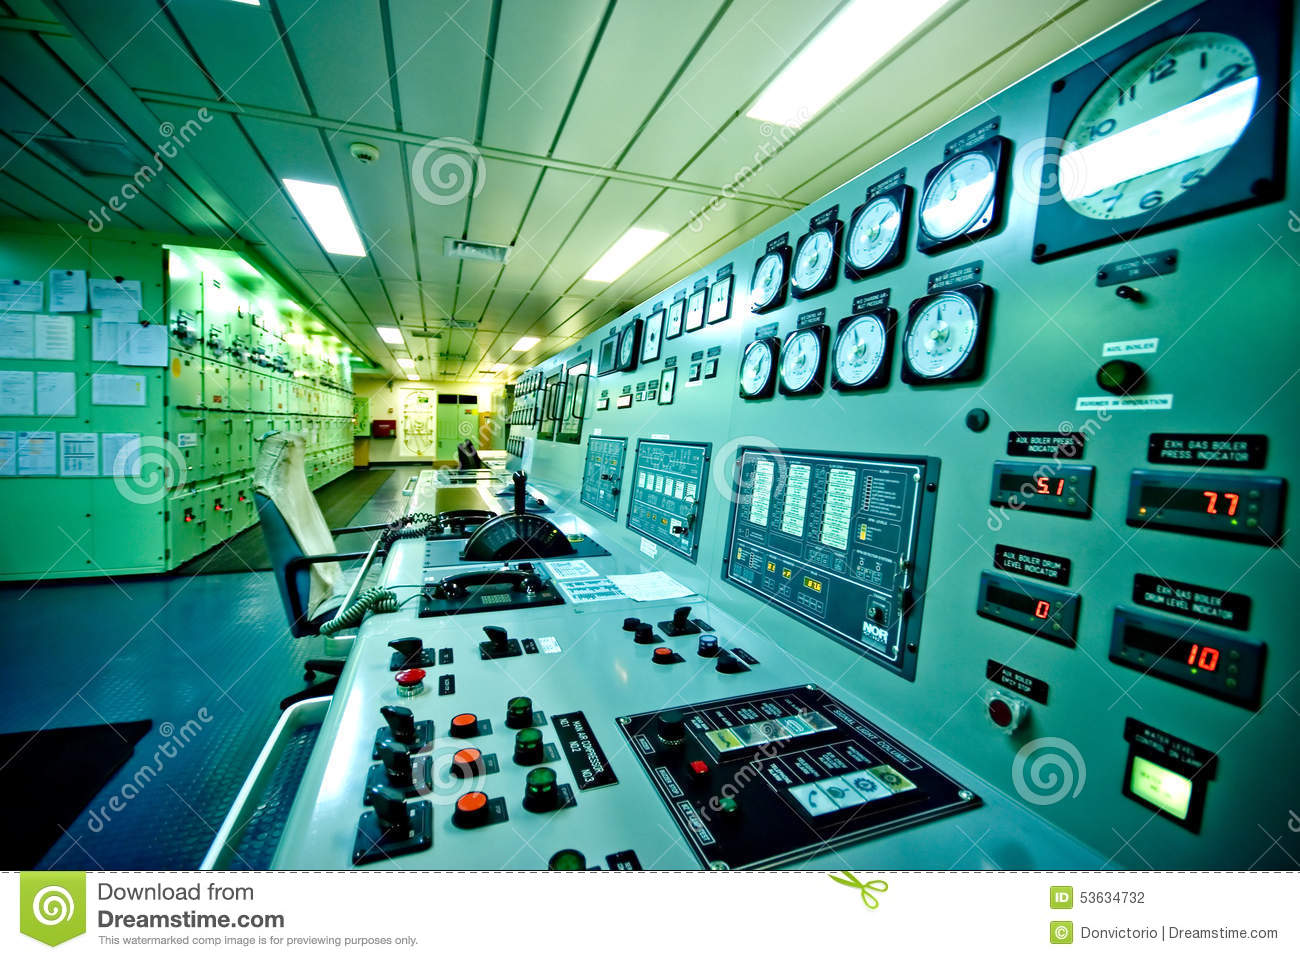 Engine Control Console : Engine room console control panel on tanker royalty free